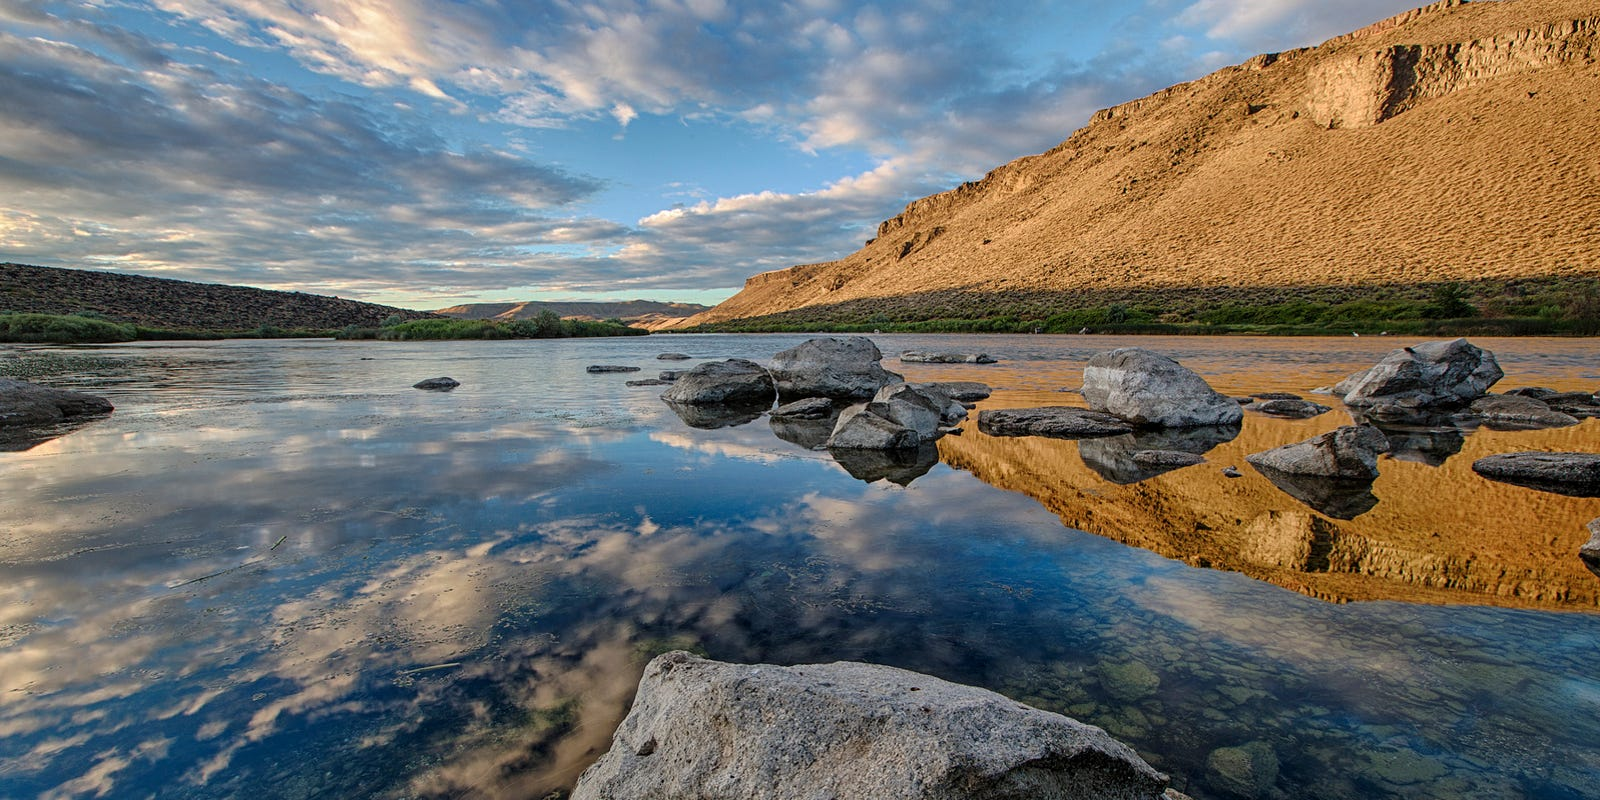 Escape city life at these nearby public lands